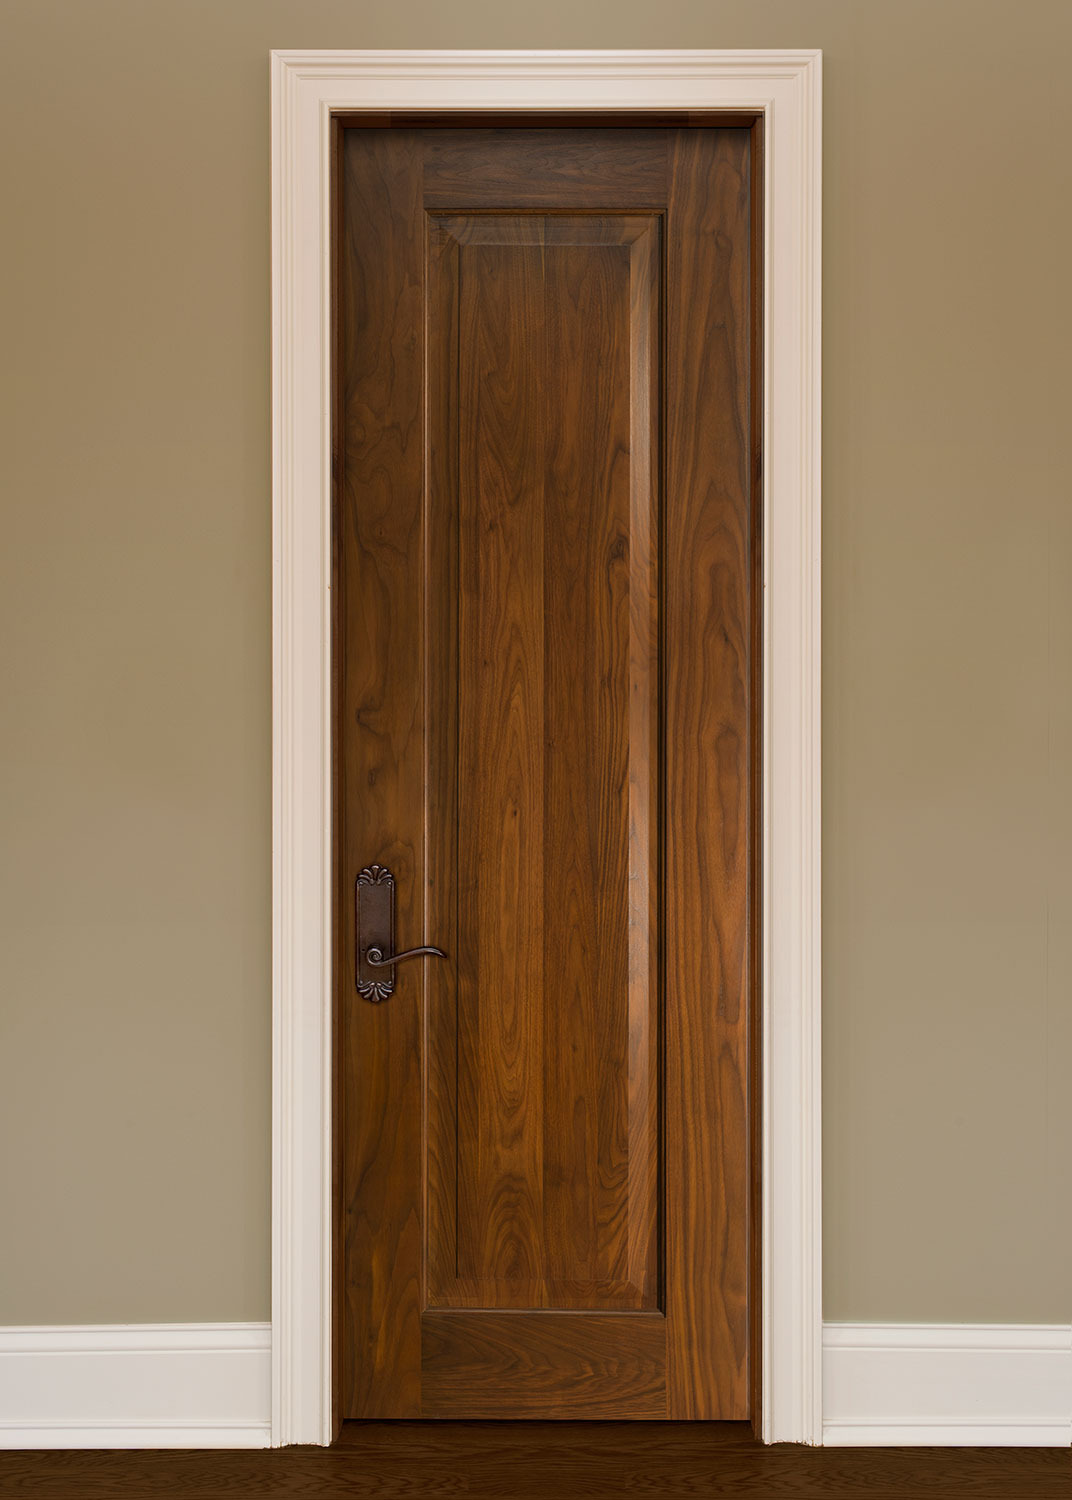 stylish door designs double design new front wooden main solid wood rustic interior doors look simple yet